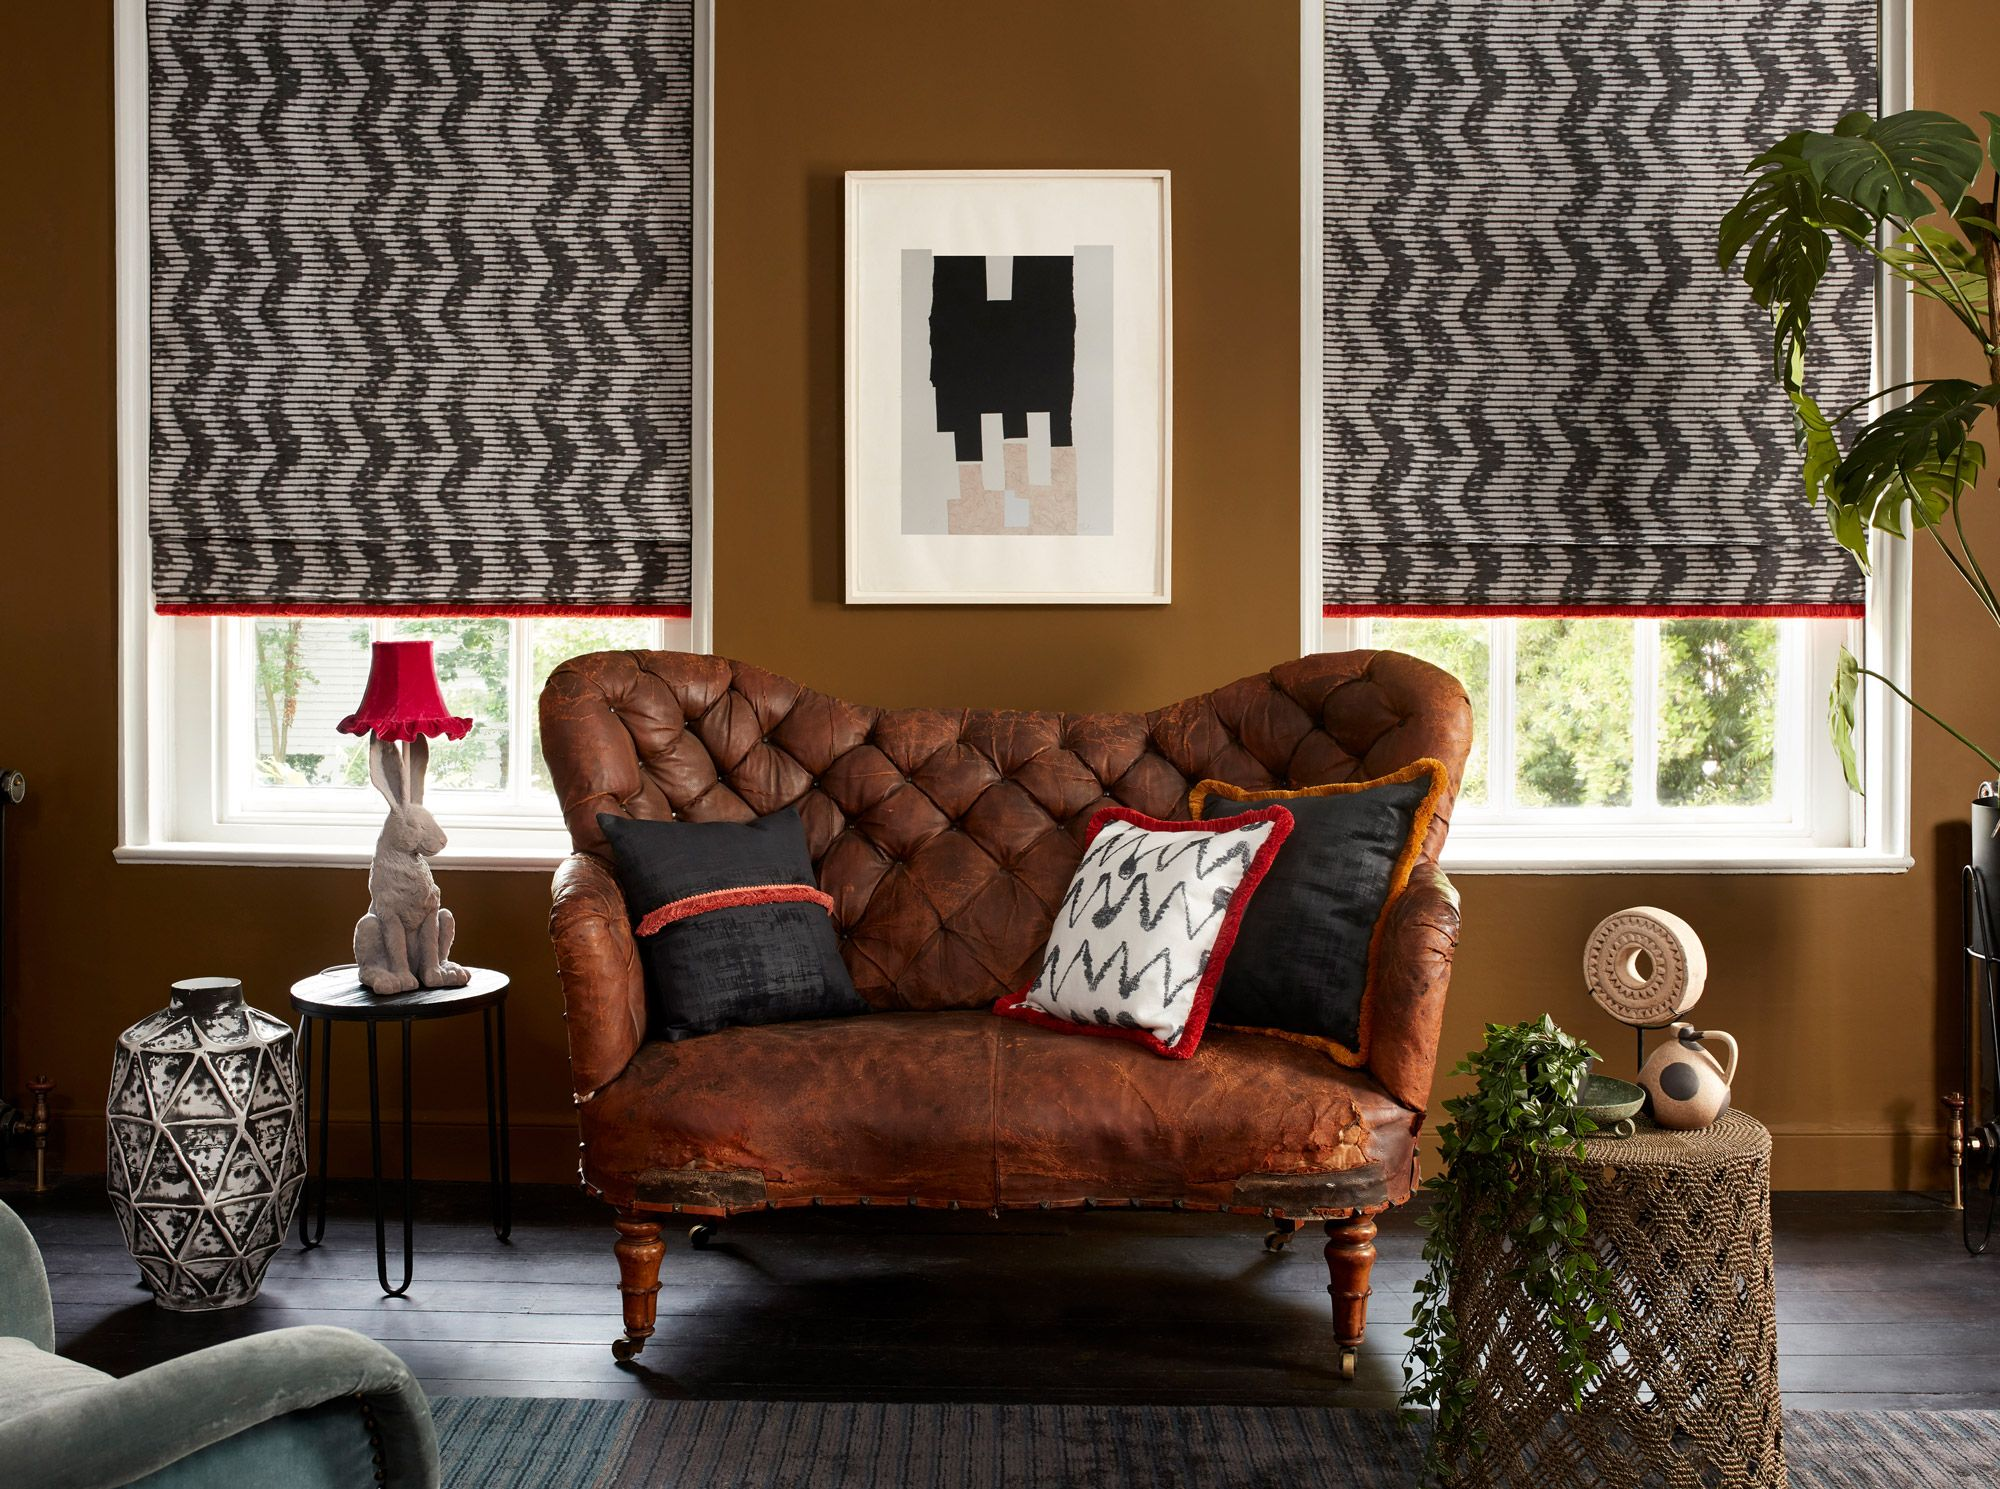 Roman Blinds Up To 50 Off Made To Measure Roman Blinds